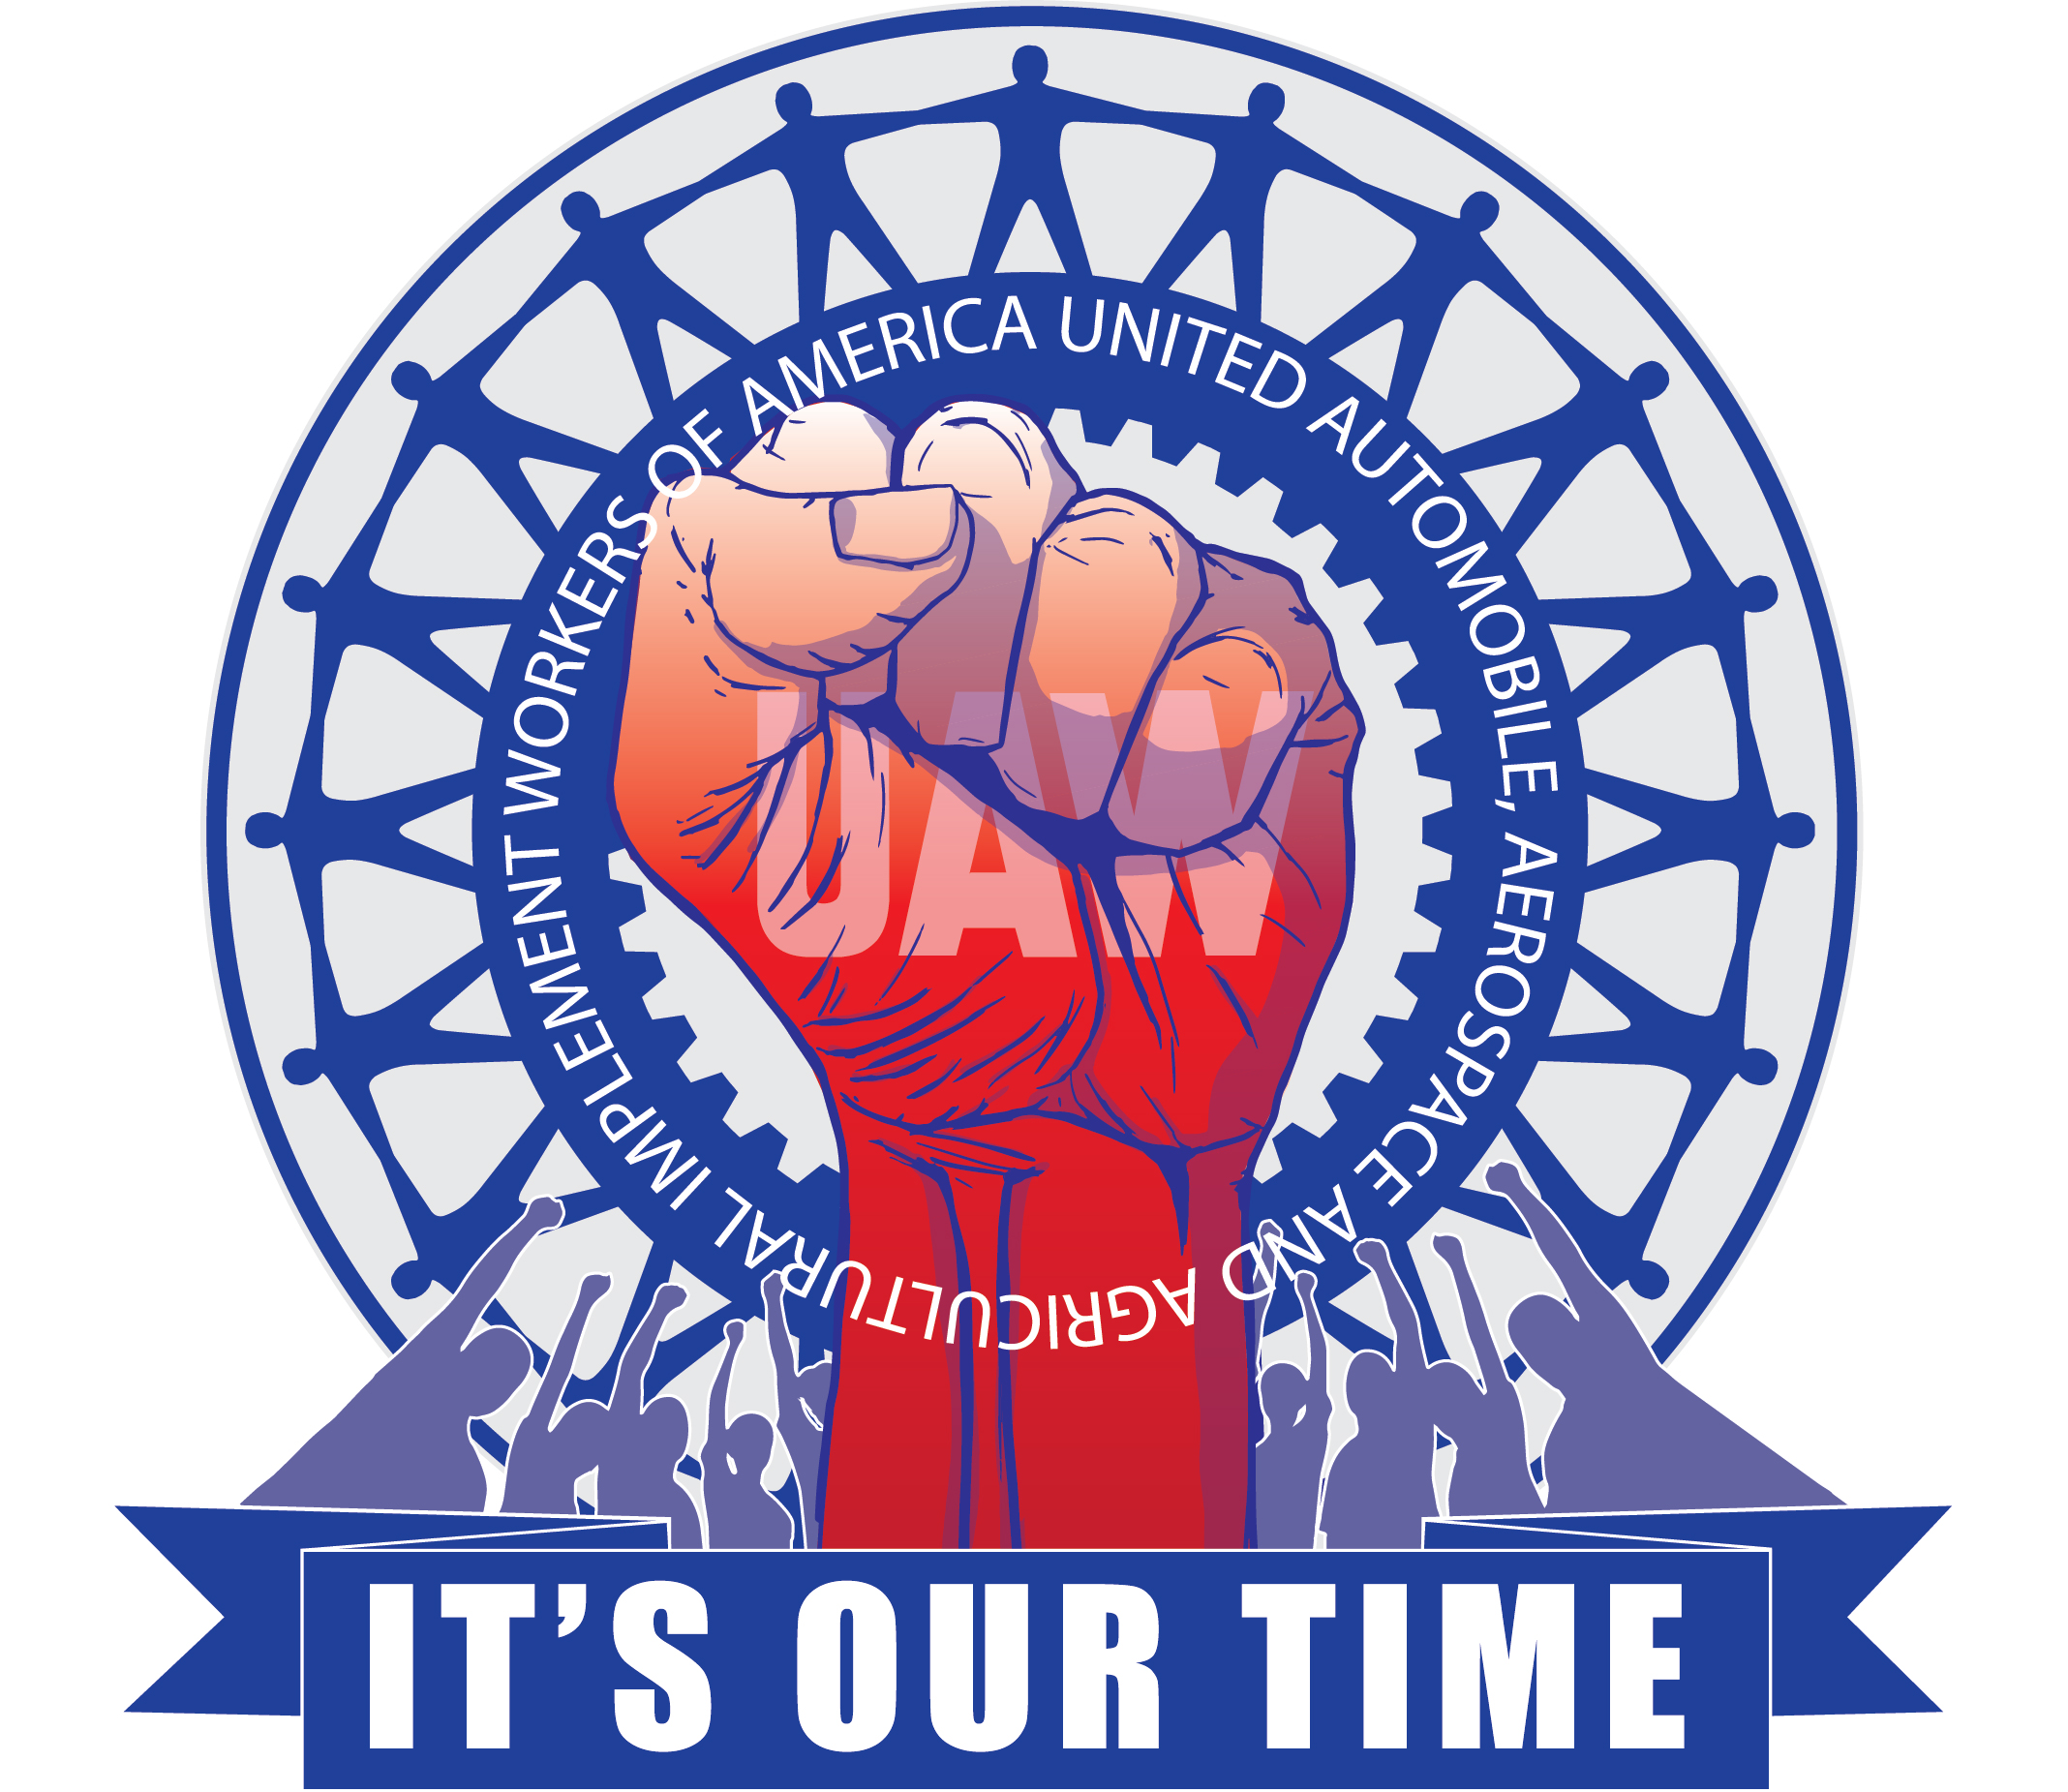 Its_our_time_designrgb_web